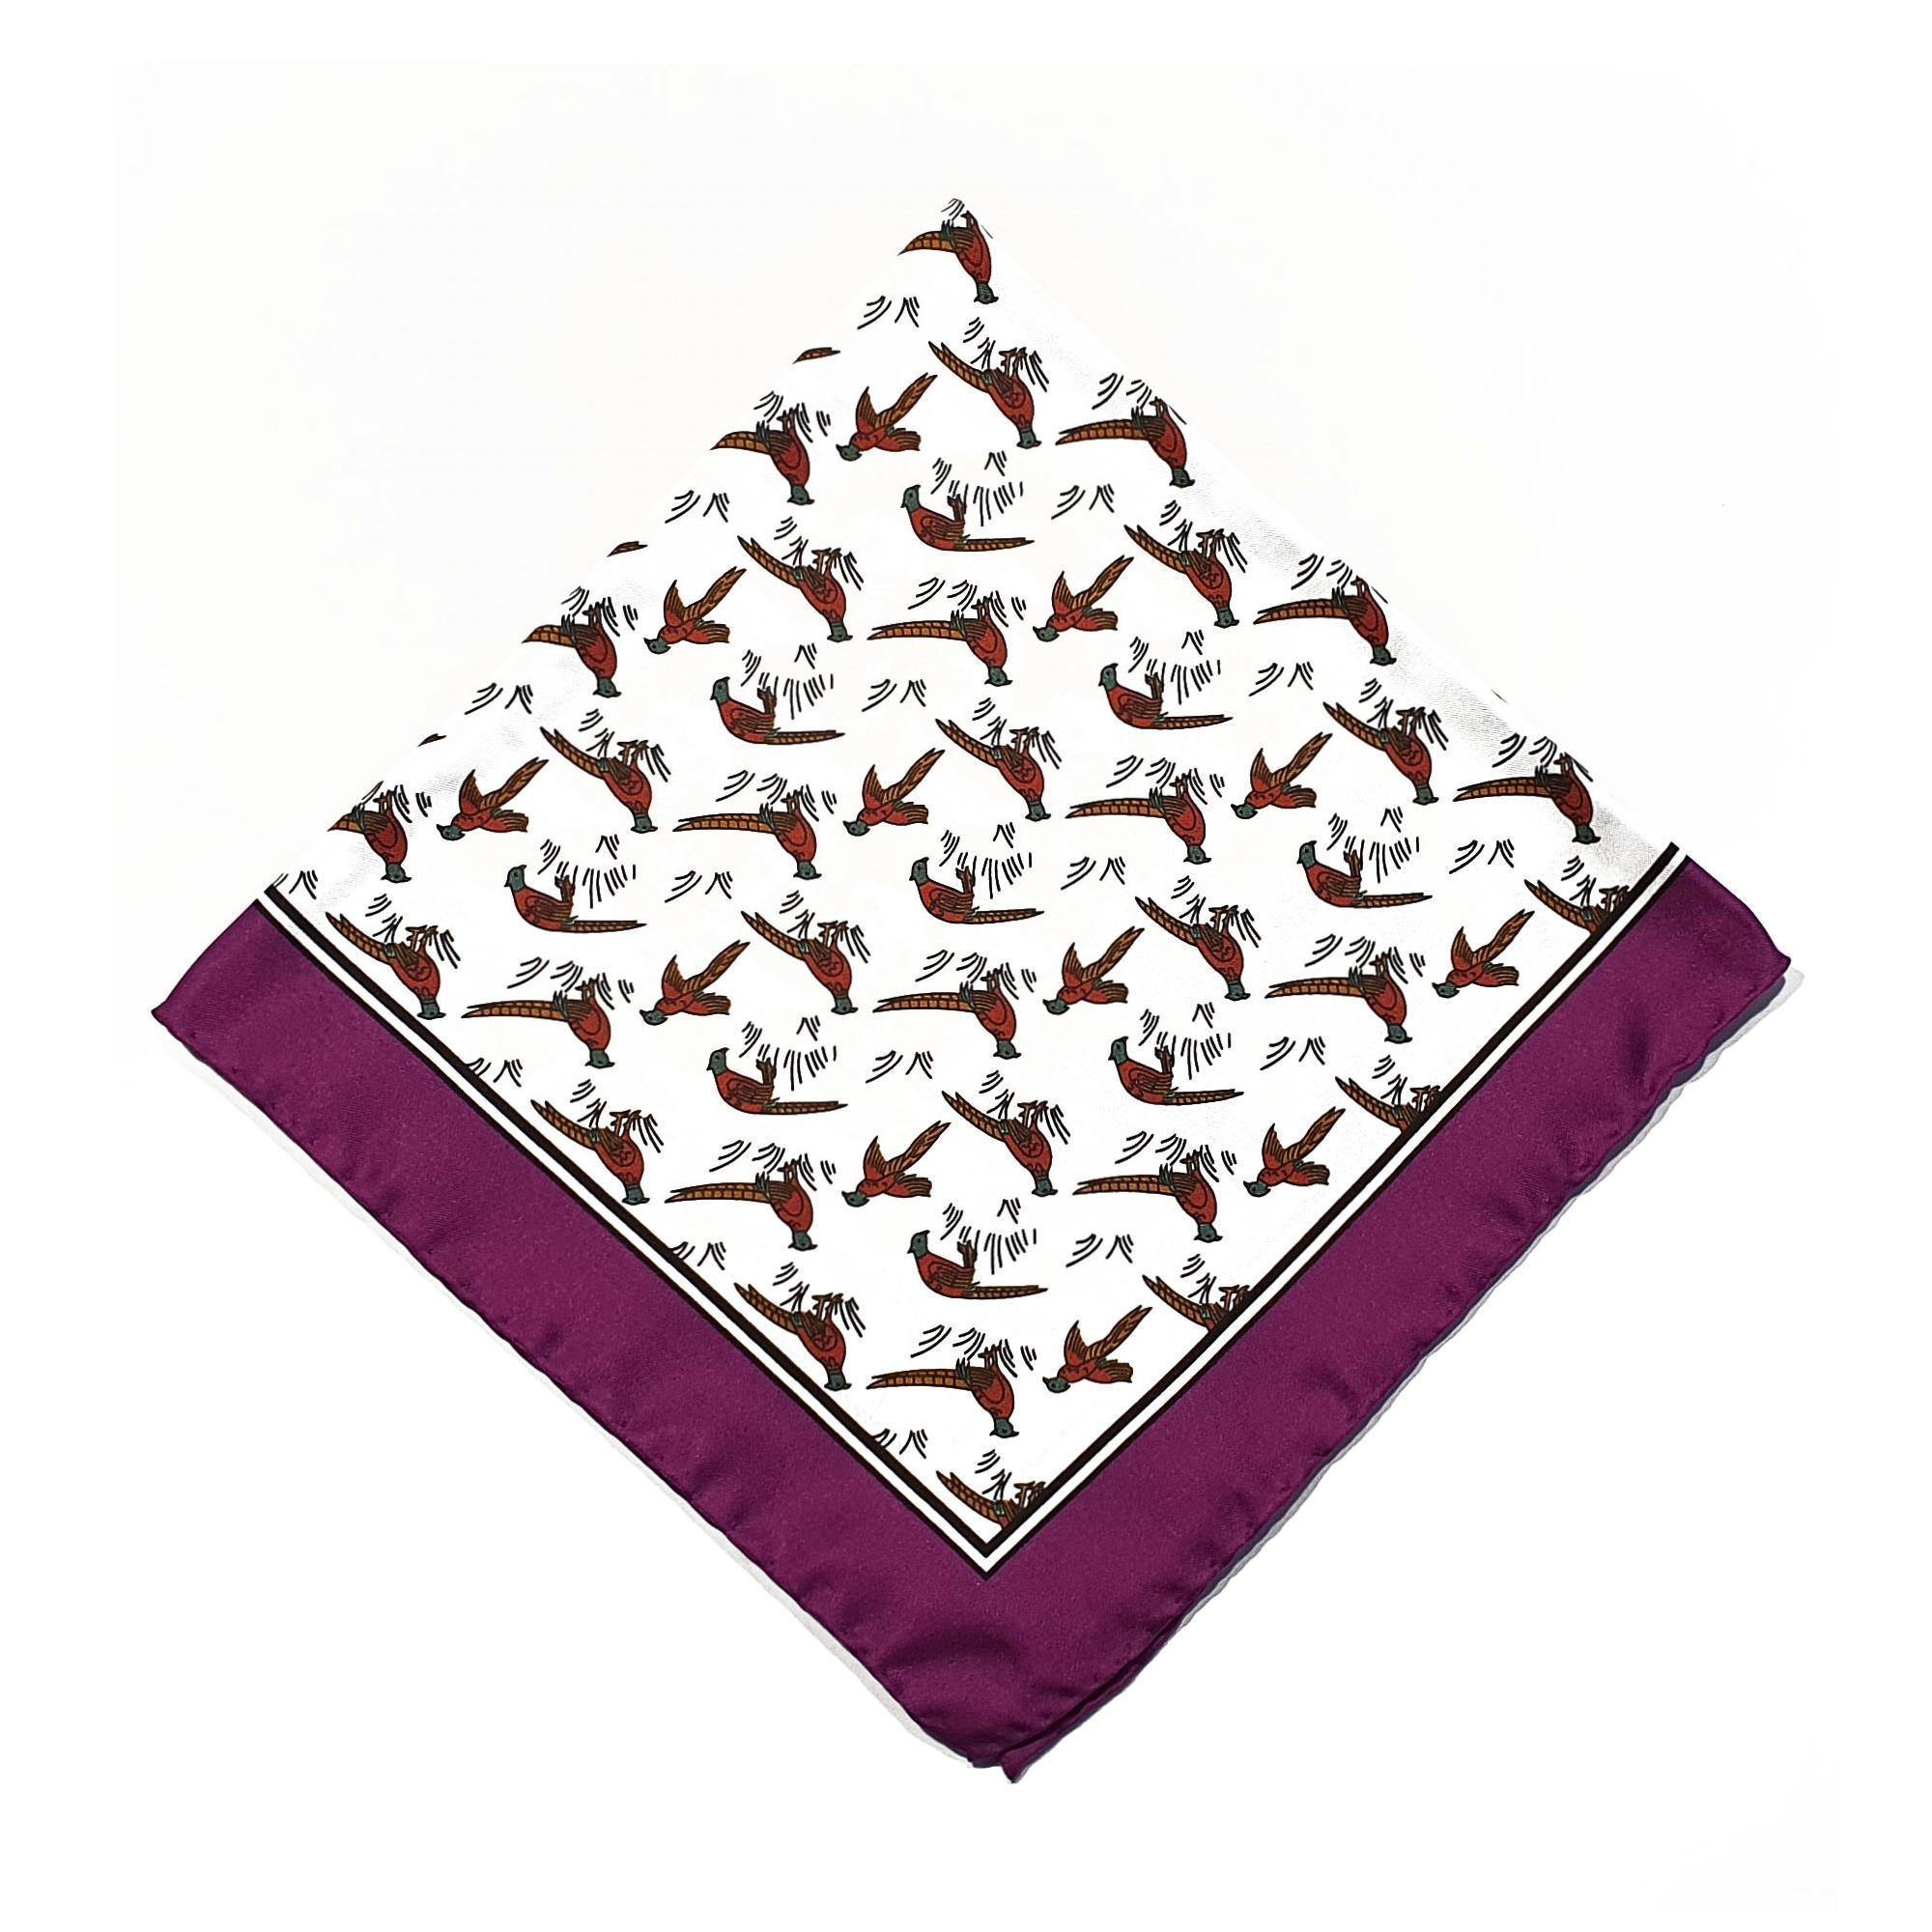 Pheasant Silk Pocket Square Purple Pink Border - British Made